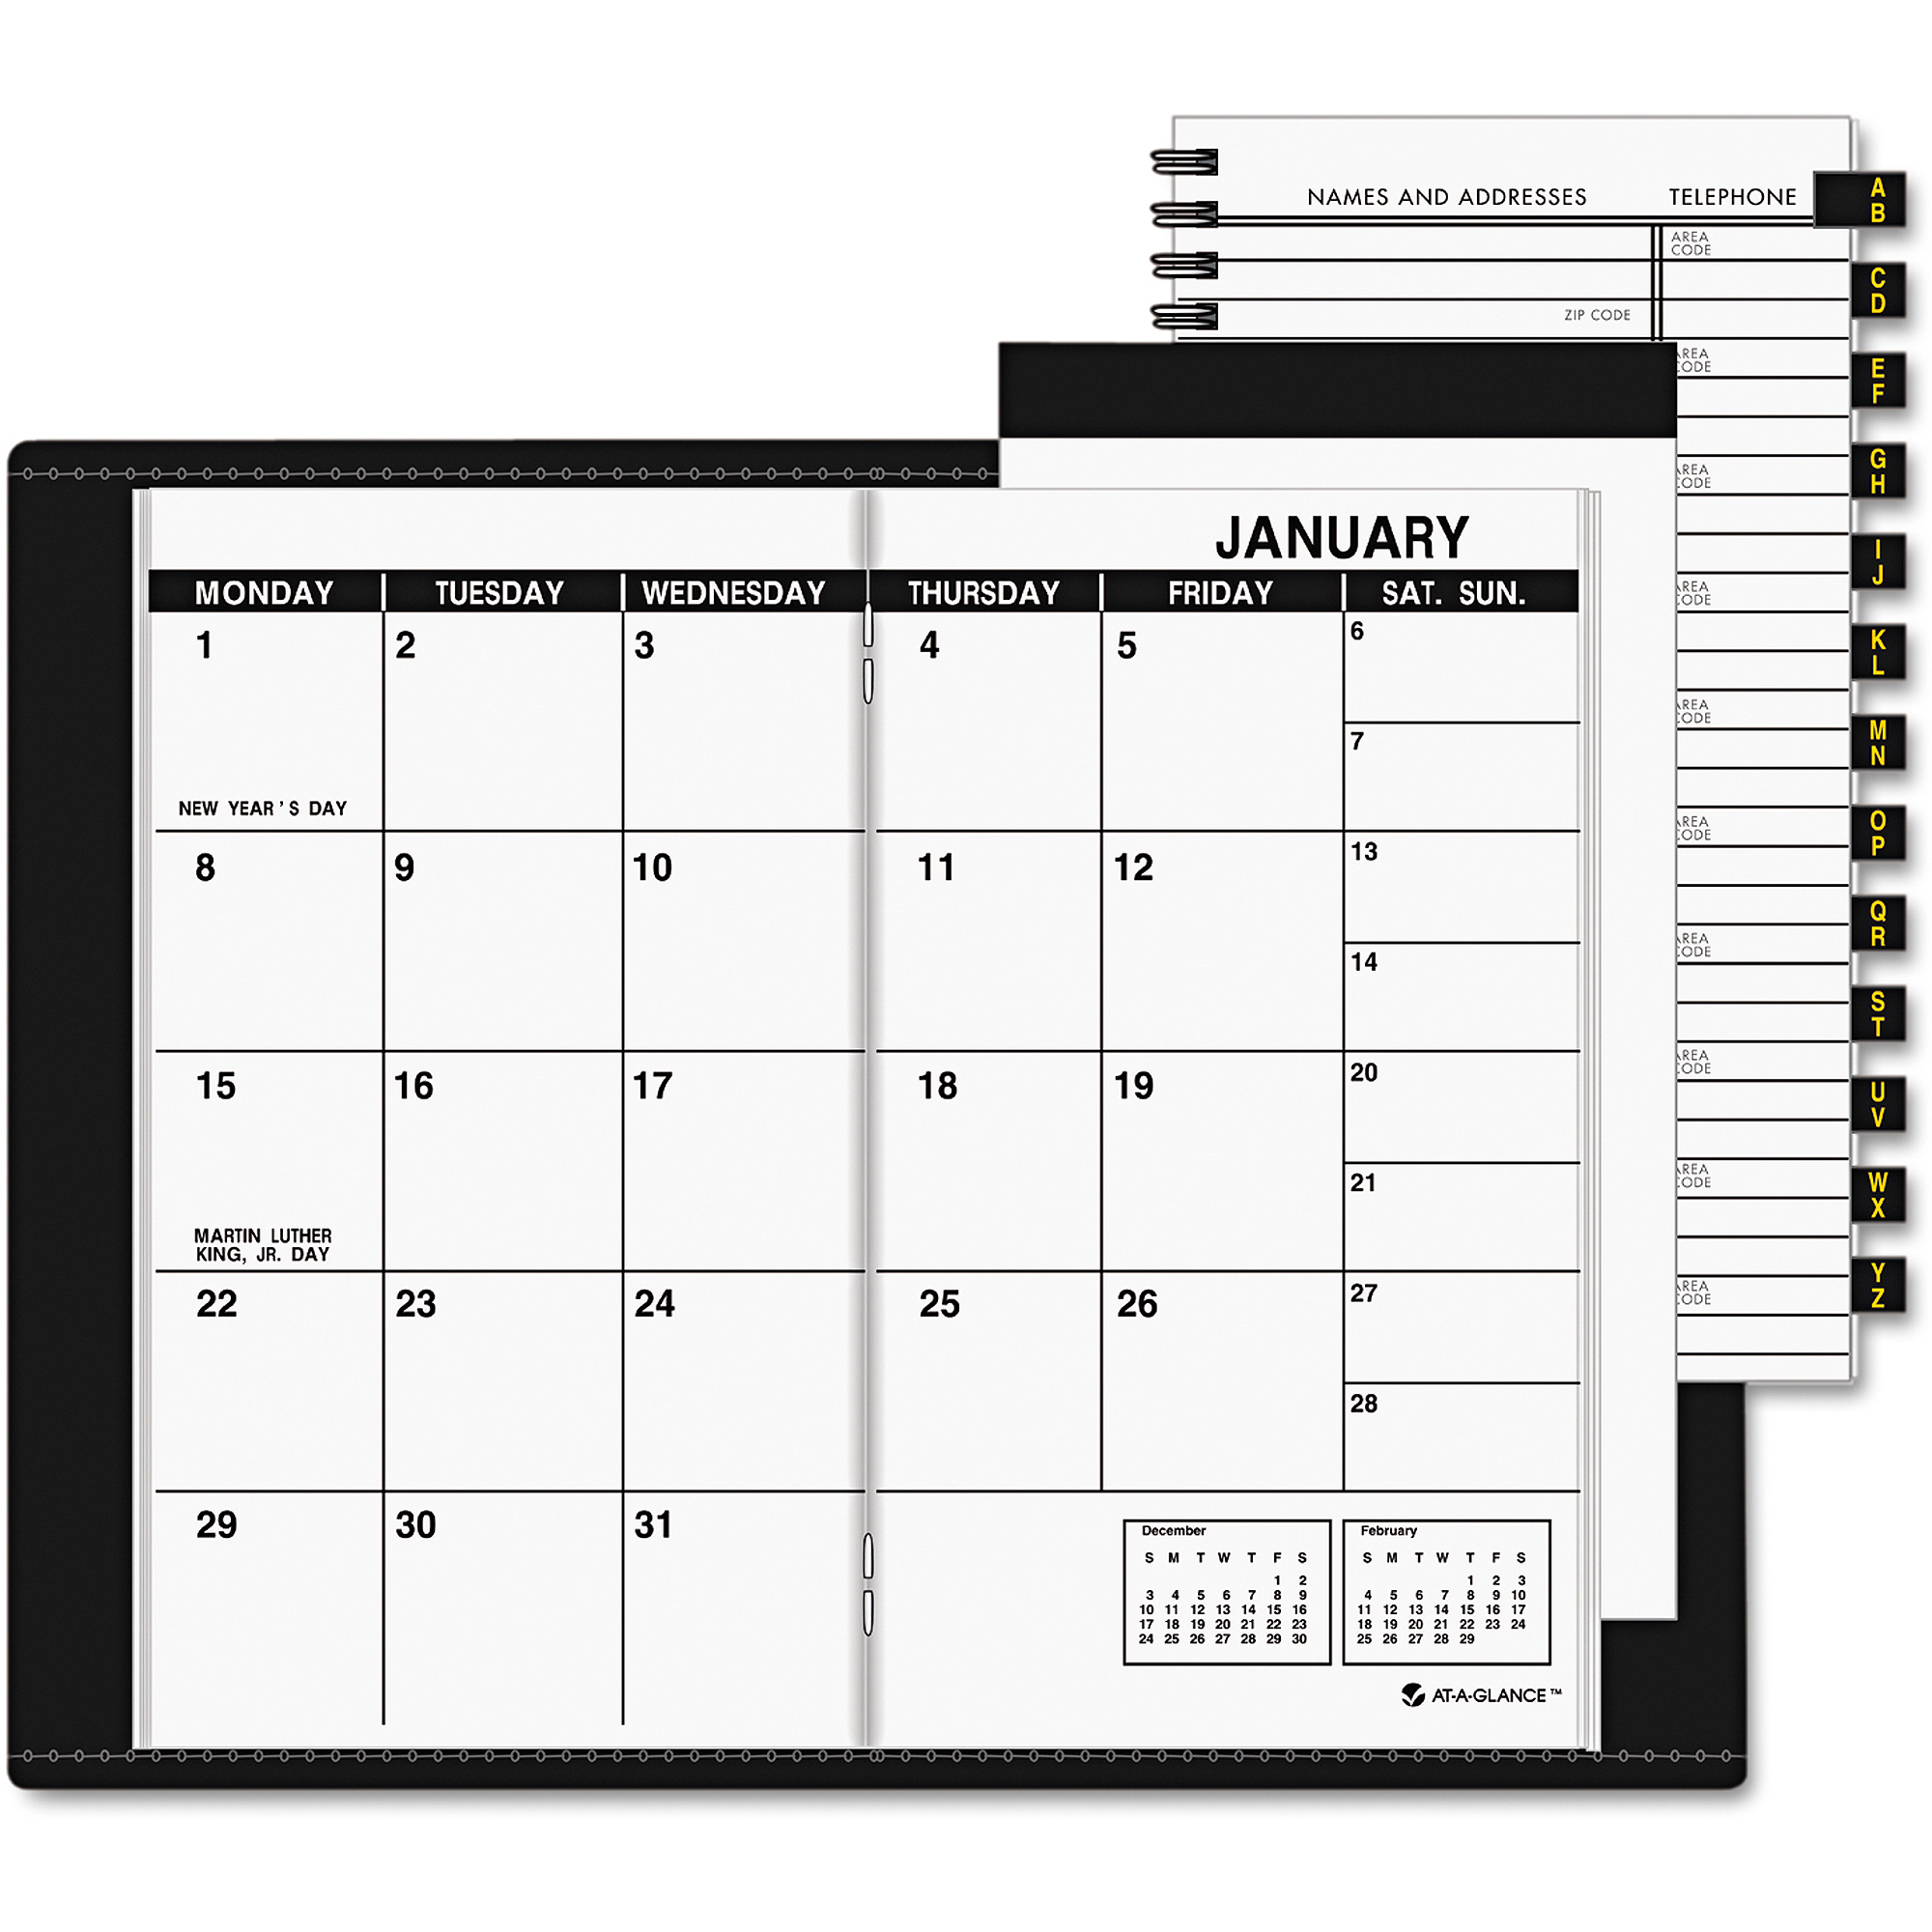 AT-A-GLANCE Pocket-Size Monthly Planner, 3 1/2 x 6 1/8, White, 2017-2018